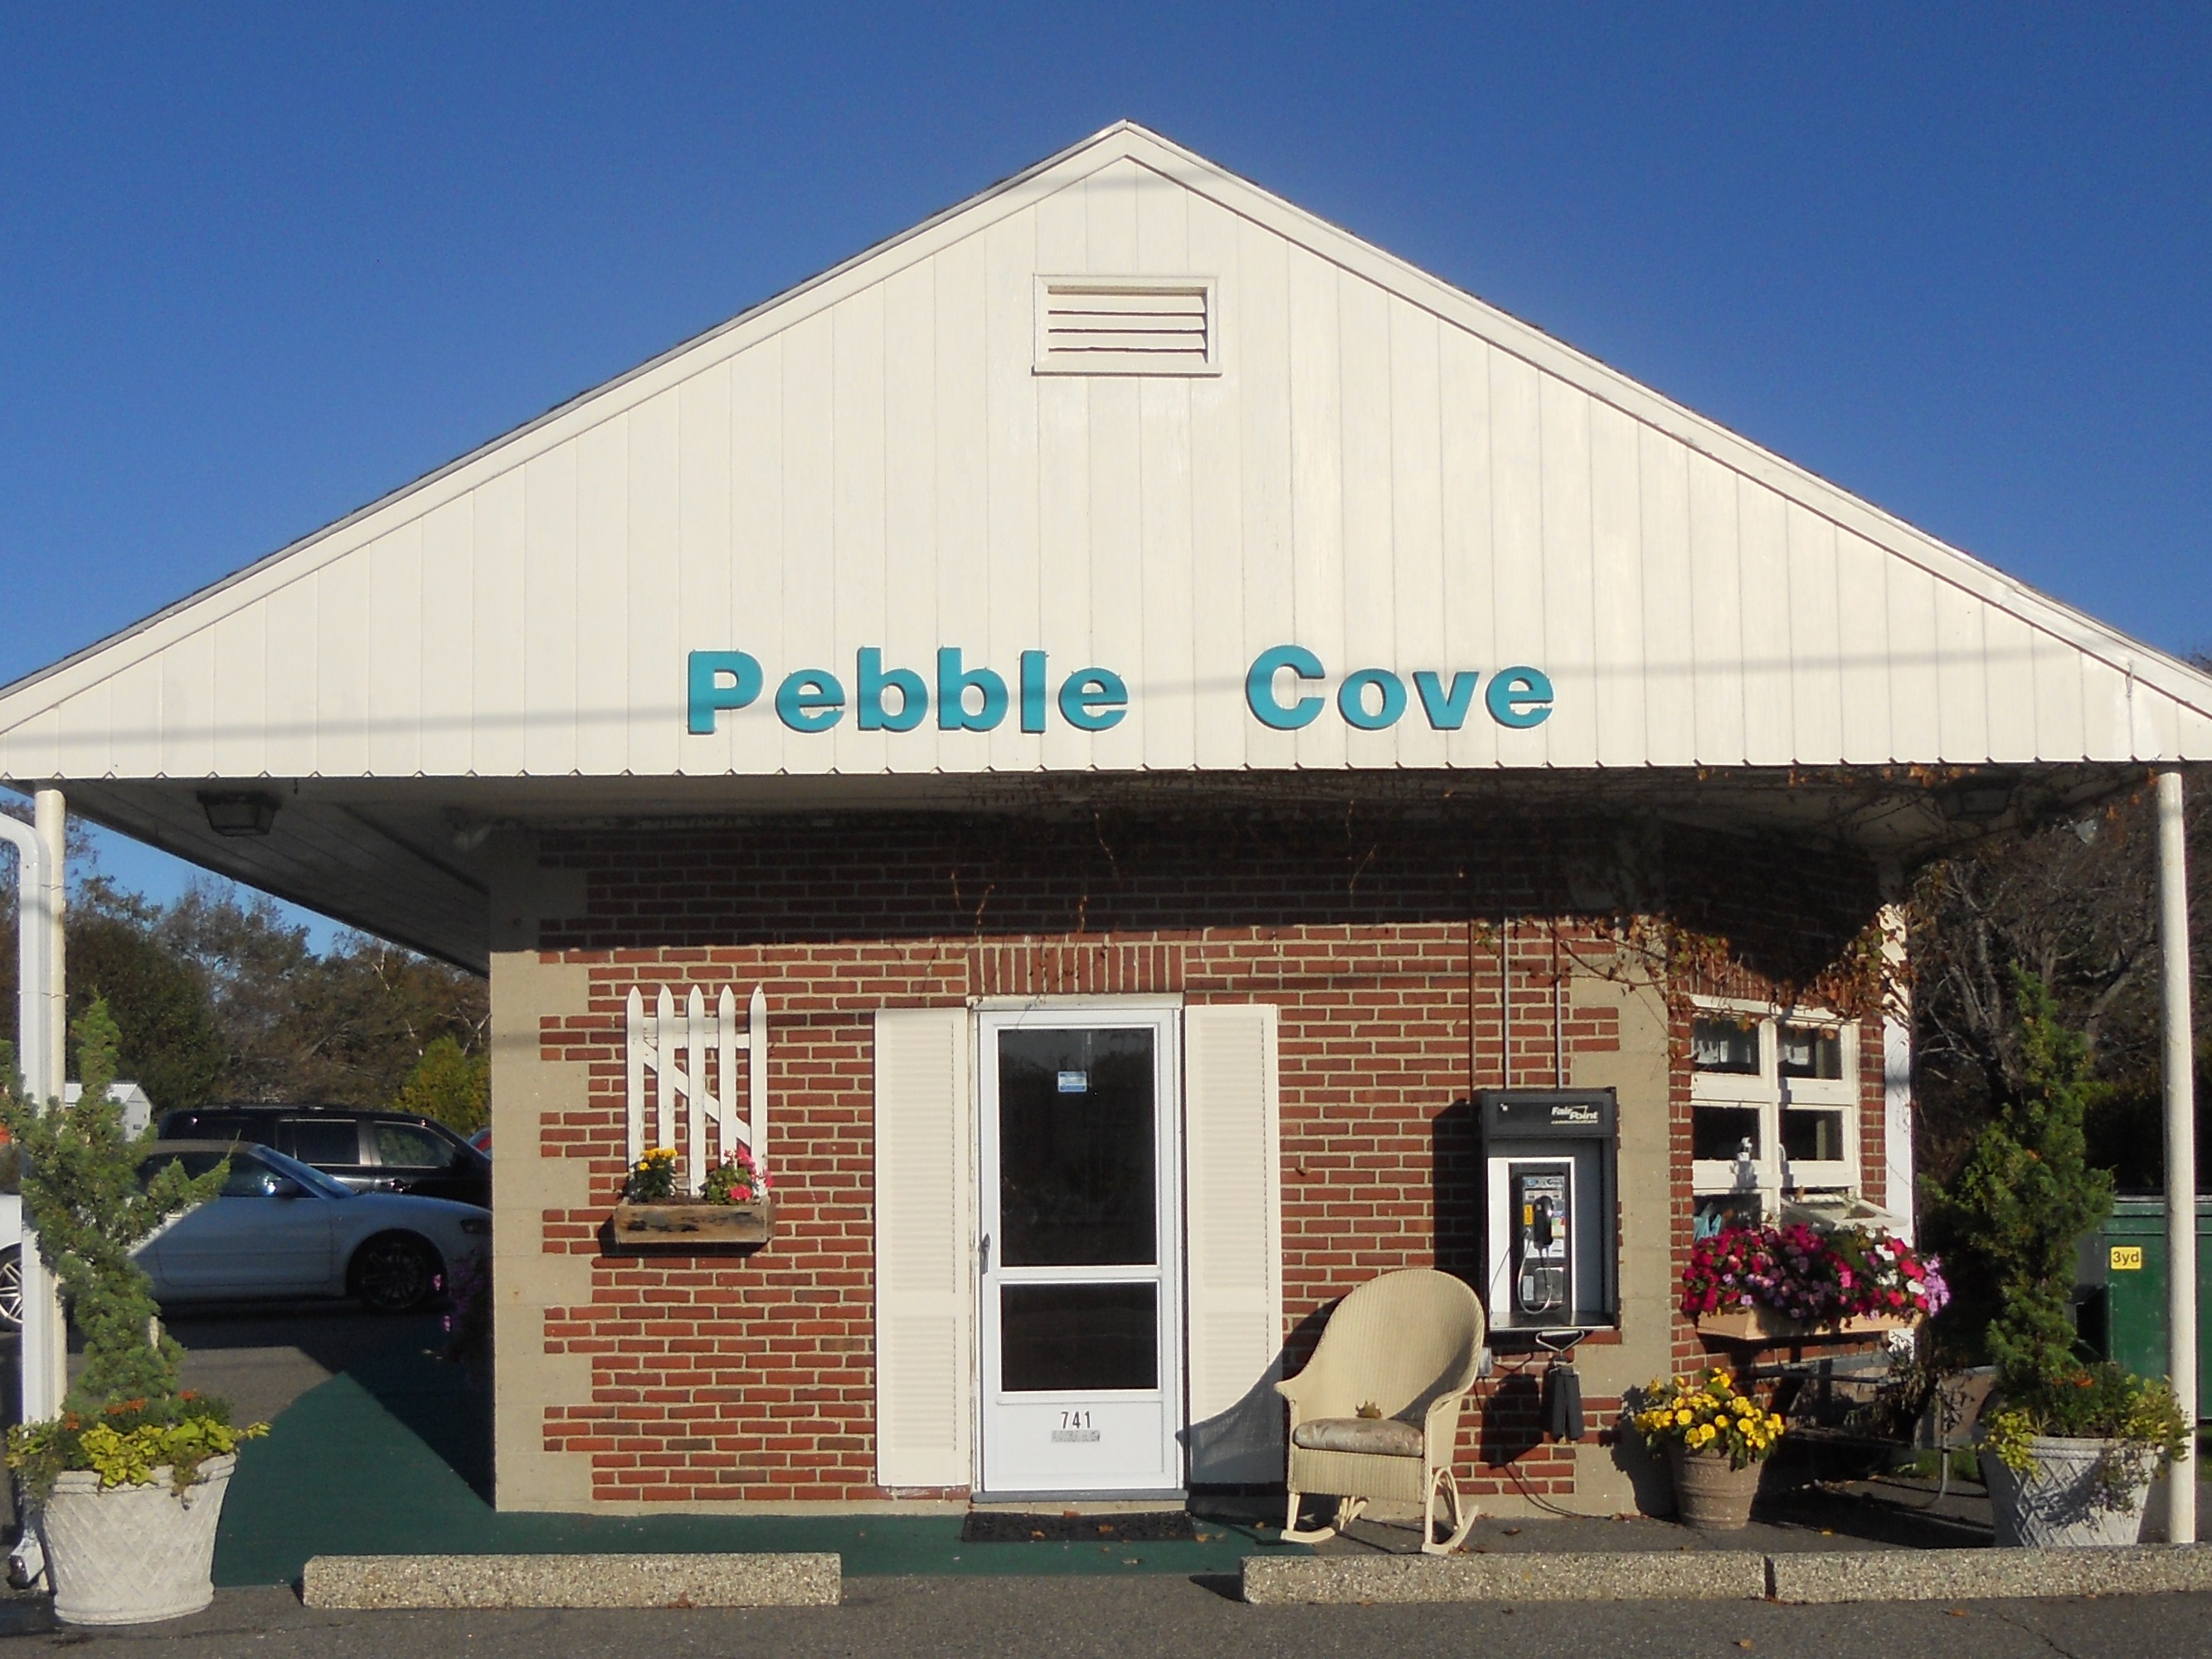 Pebble Cove